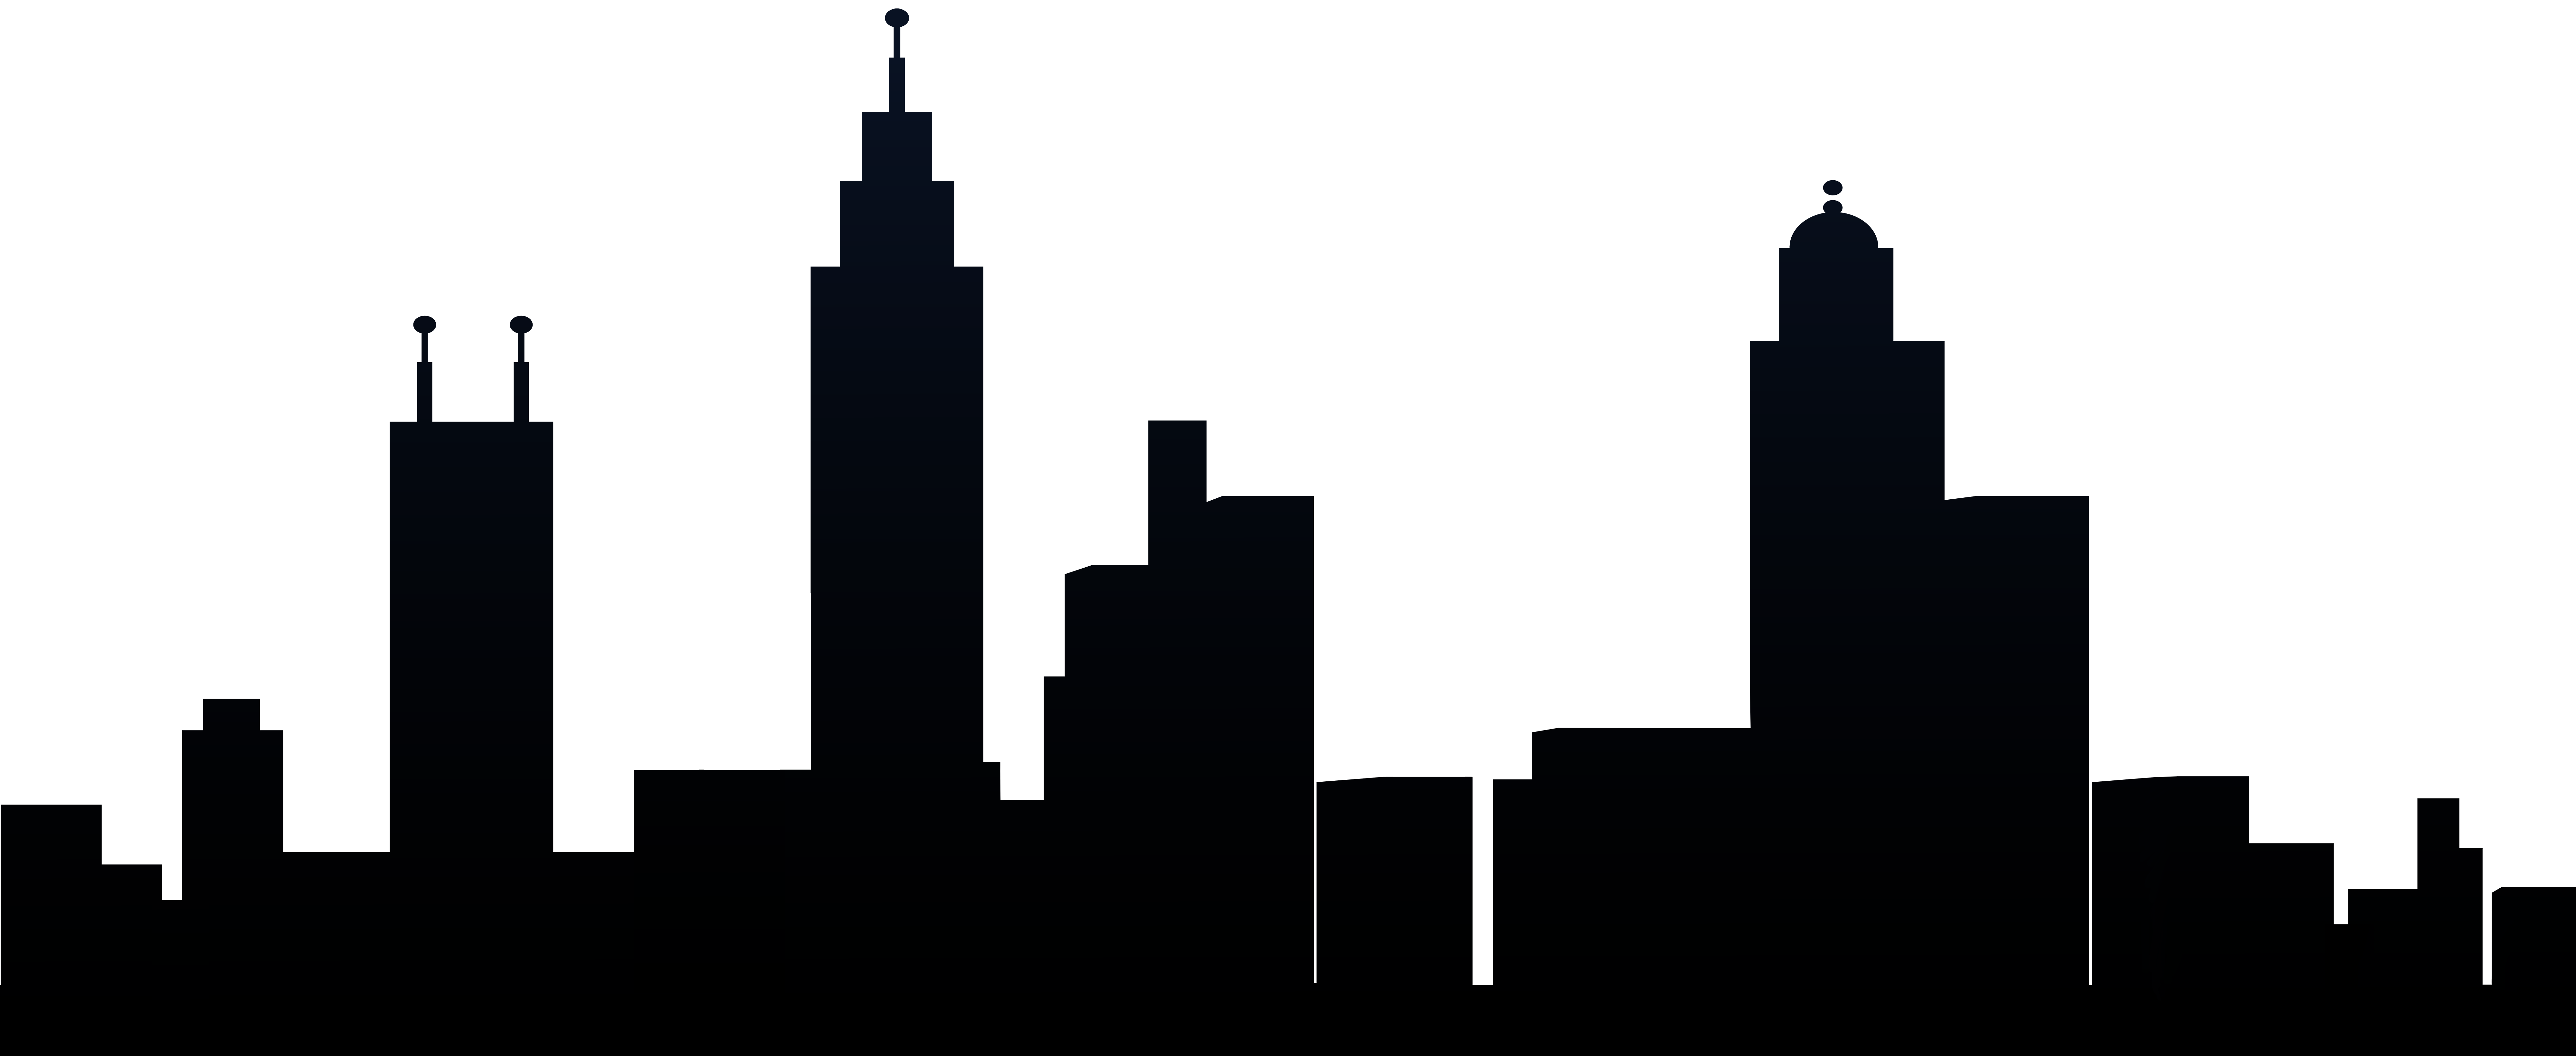 City silhouette png. Clip art image gallery